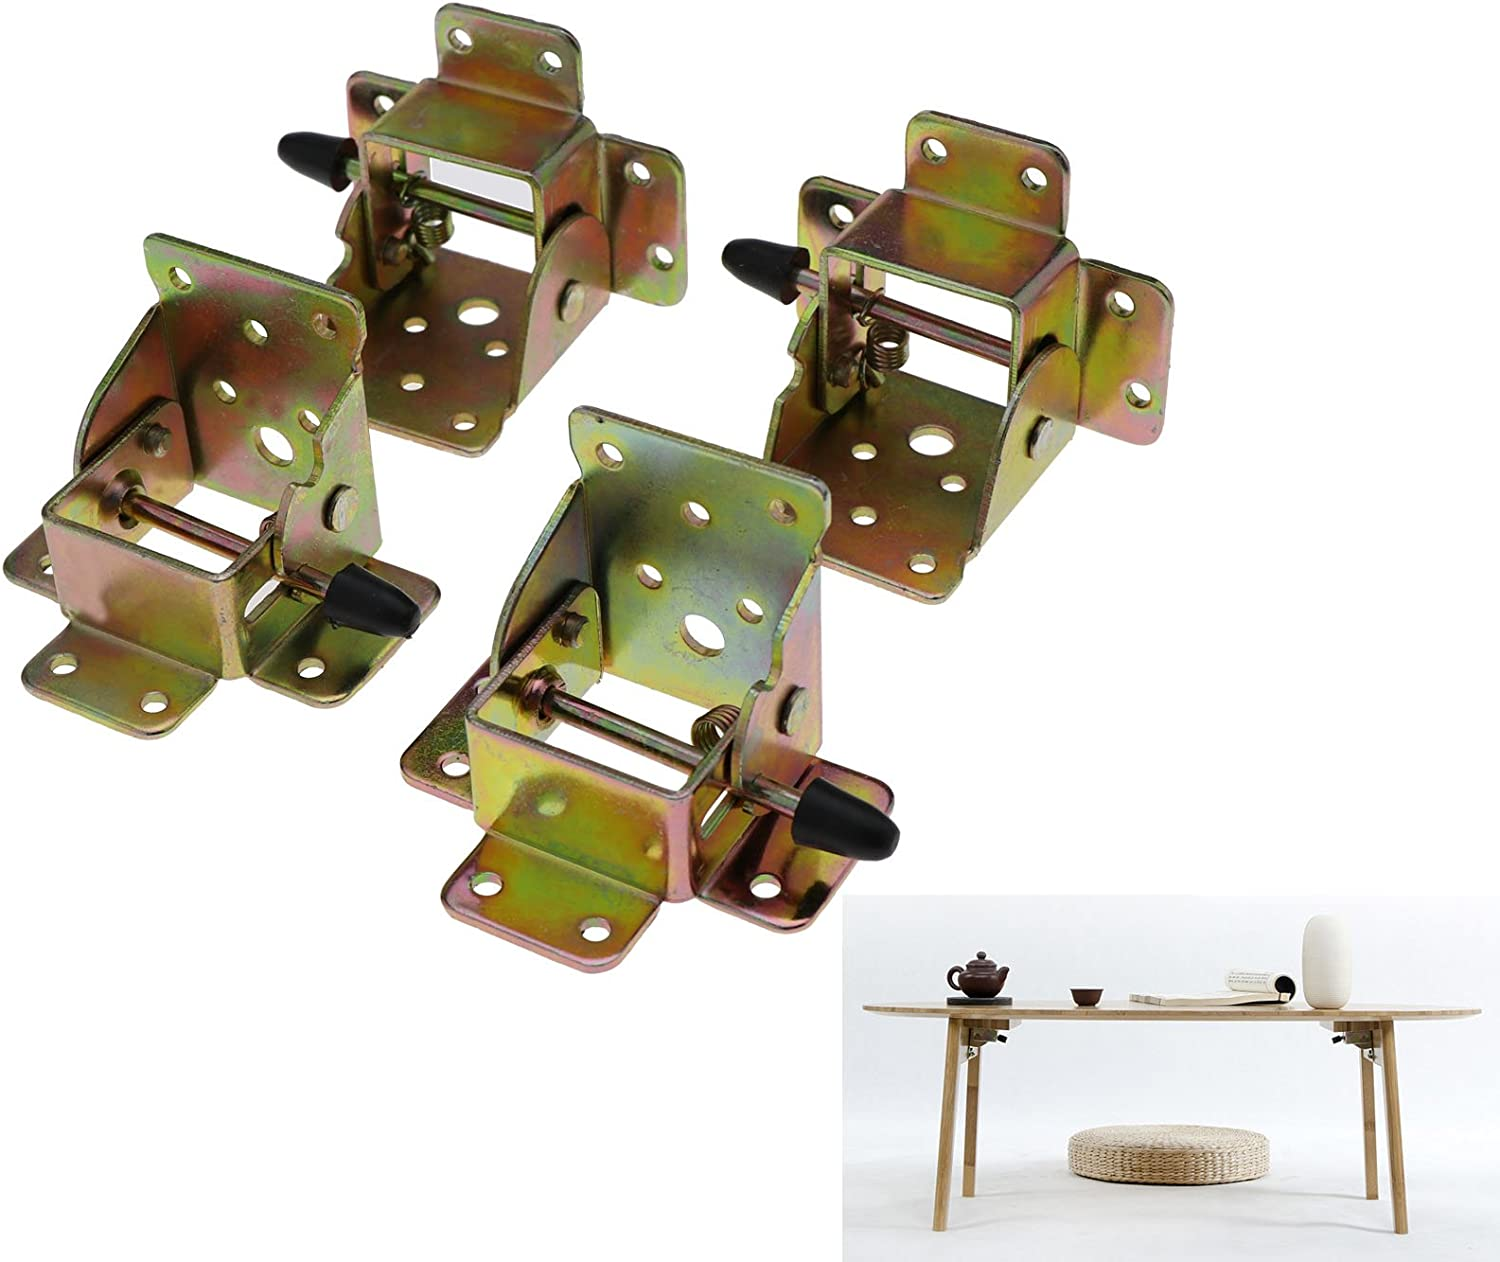 90 Degrees Iron Lock Folding Table And Chair Legs Brackets Foldable Hinge ONE